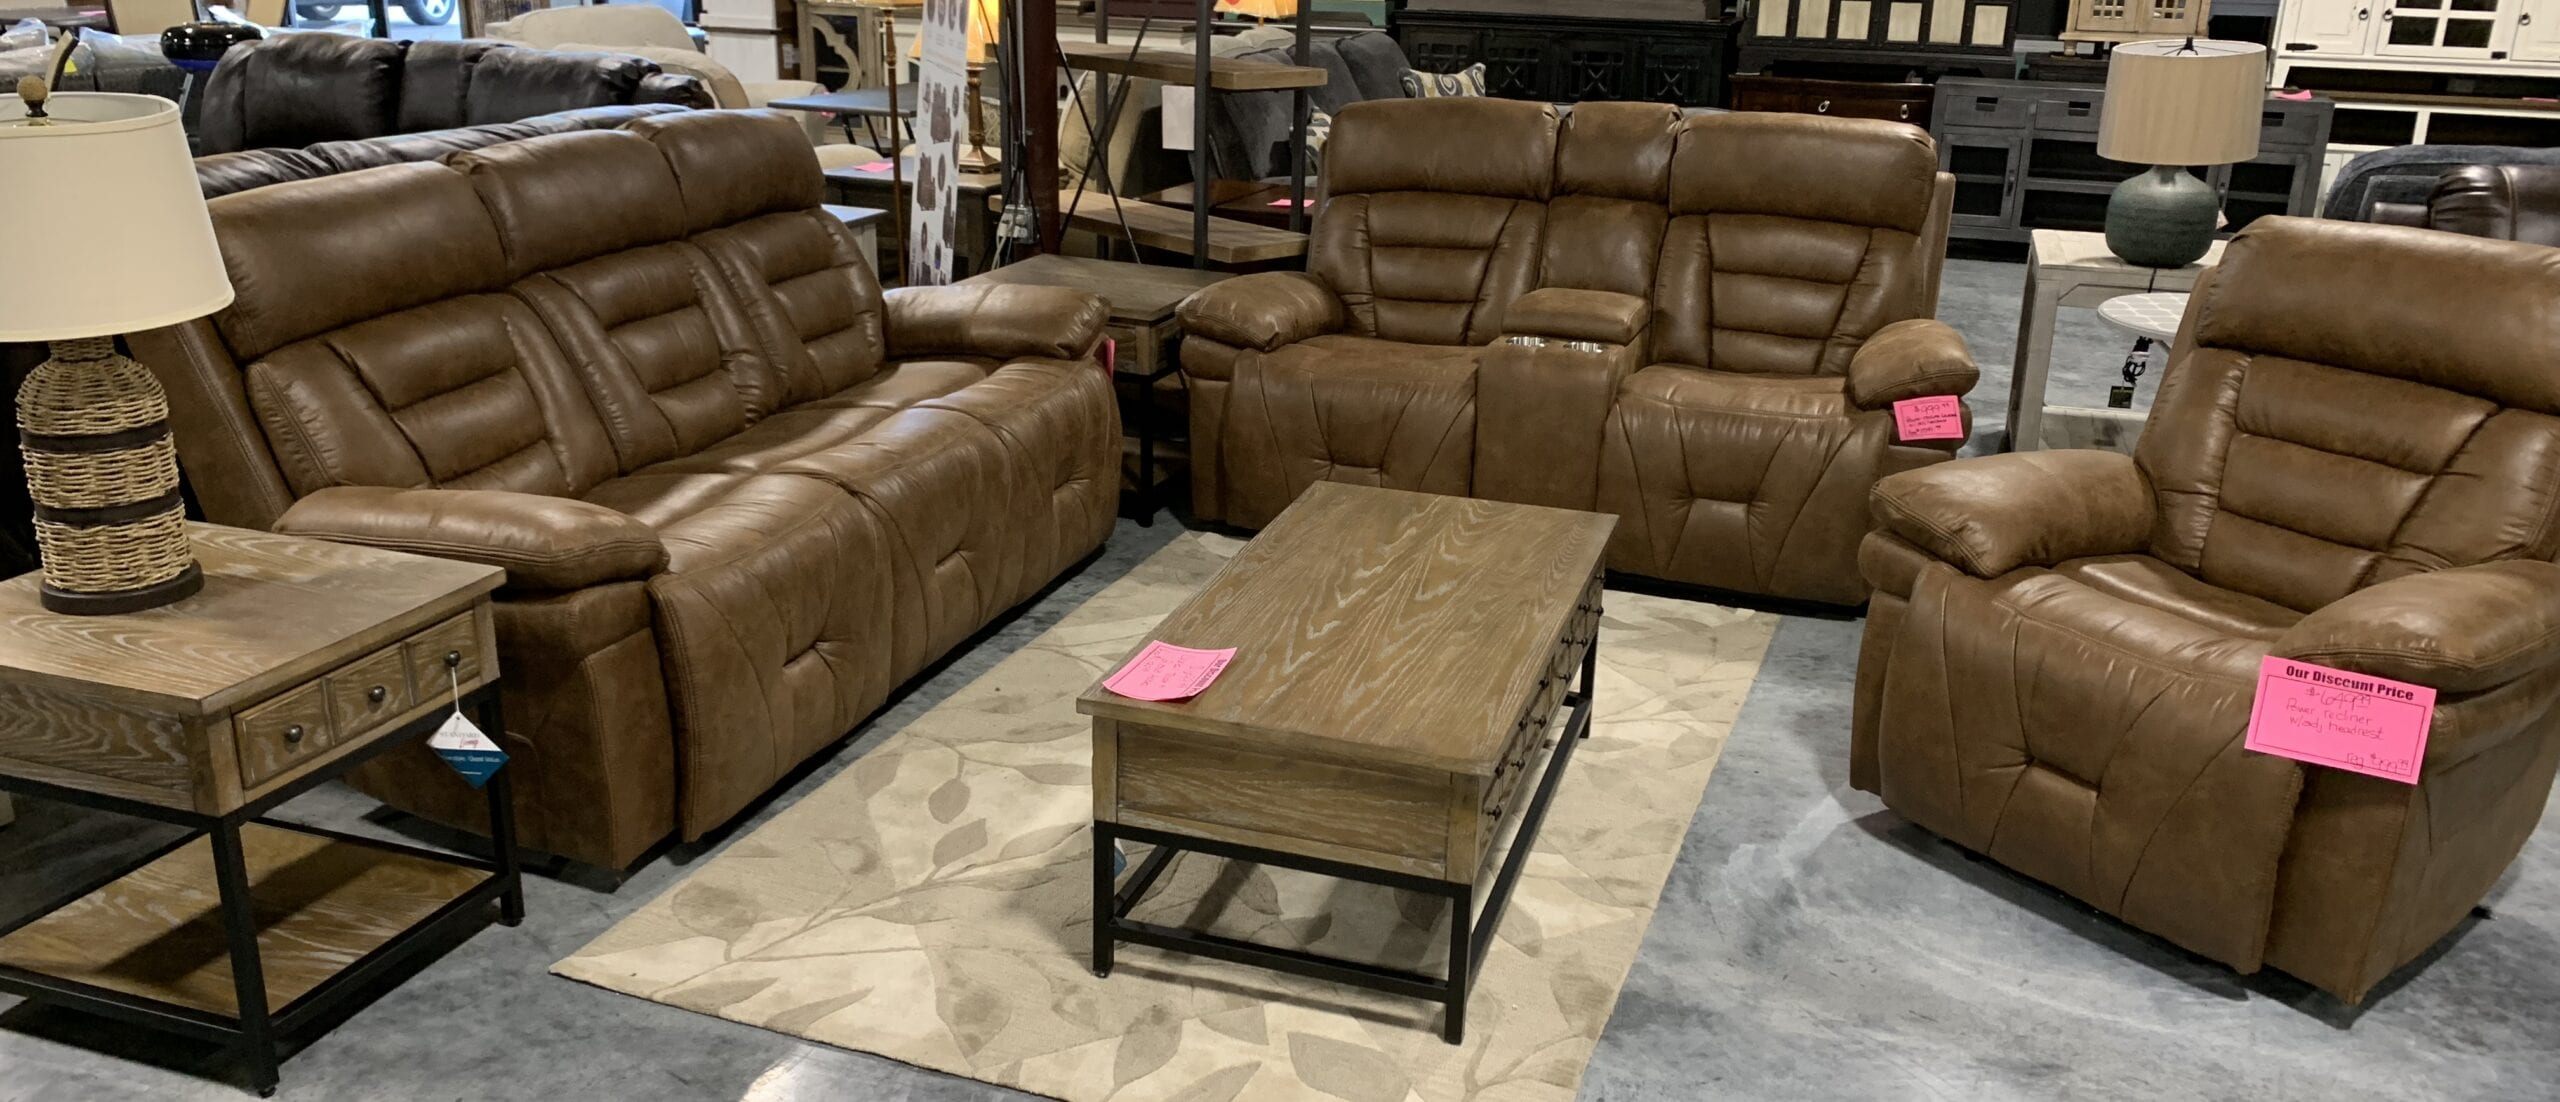 a power reclining 3 pc brown living room set by Steve Silver